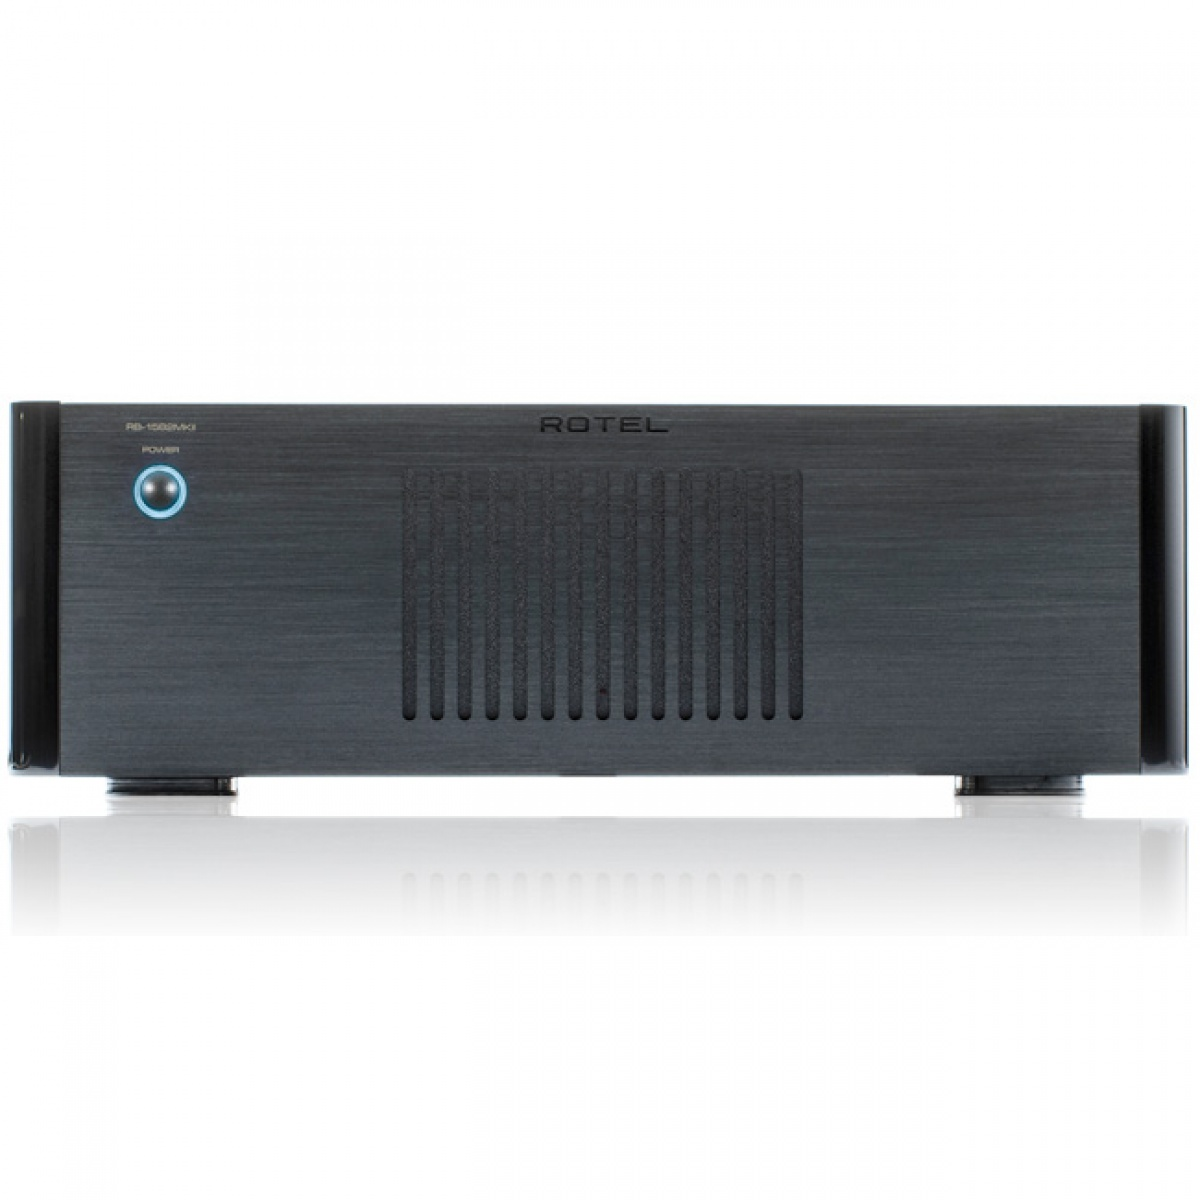 Rotel RB1582 MKII 2 Channel Amplifier